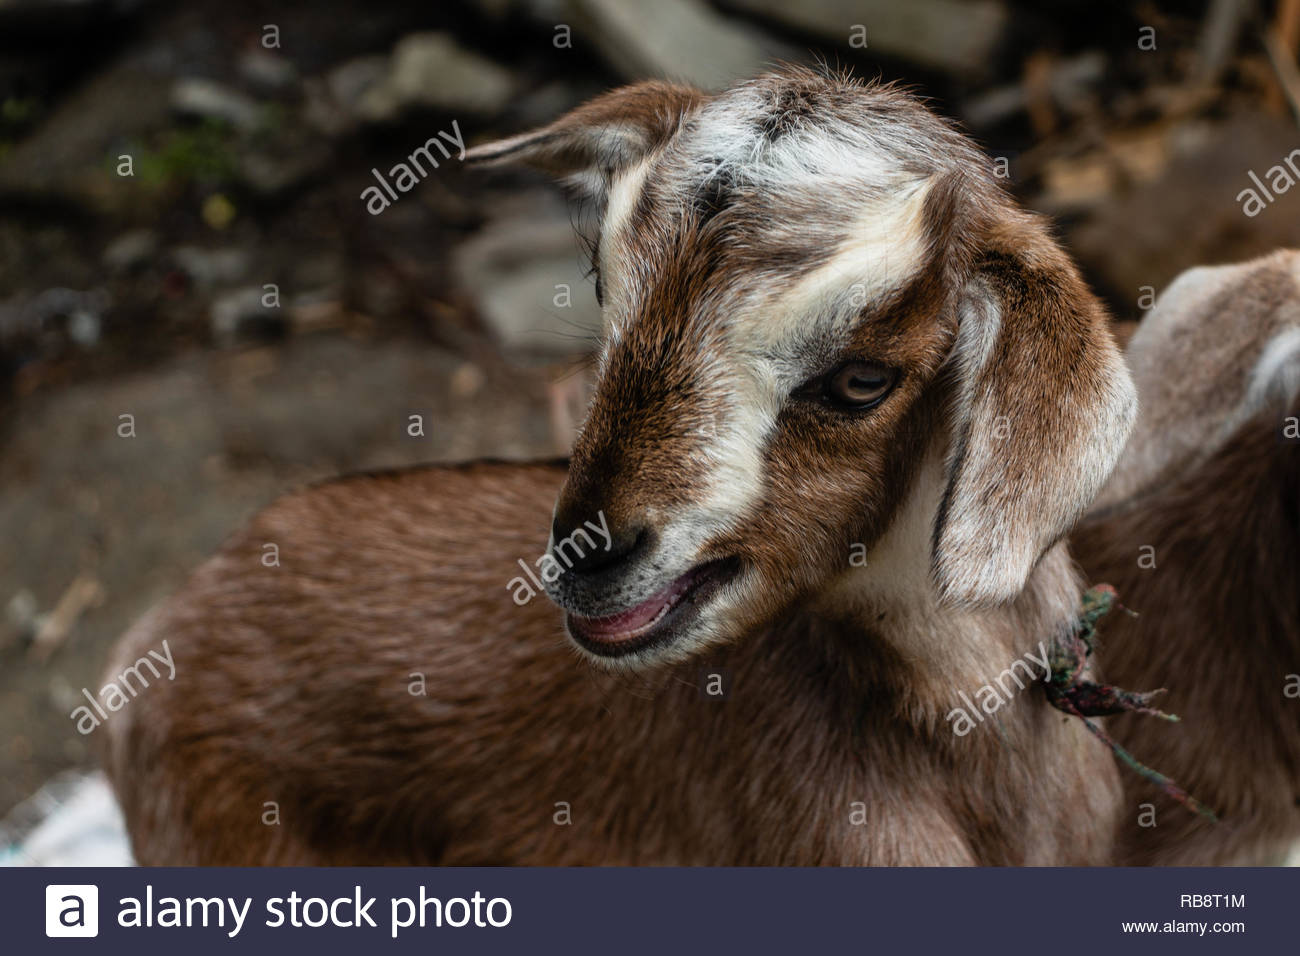 mowing baby goat close up - Stock Image